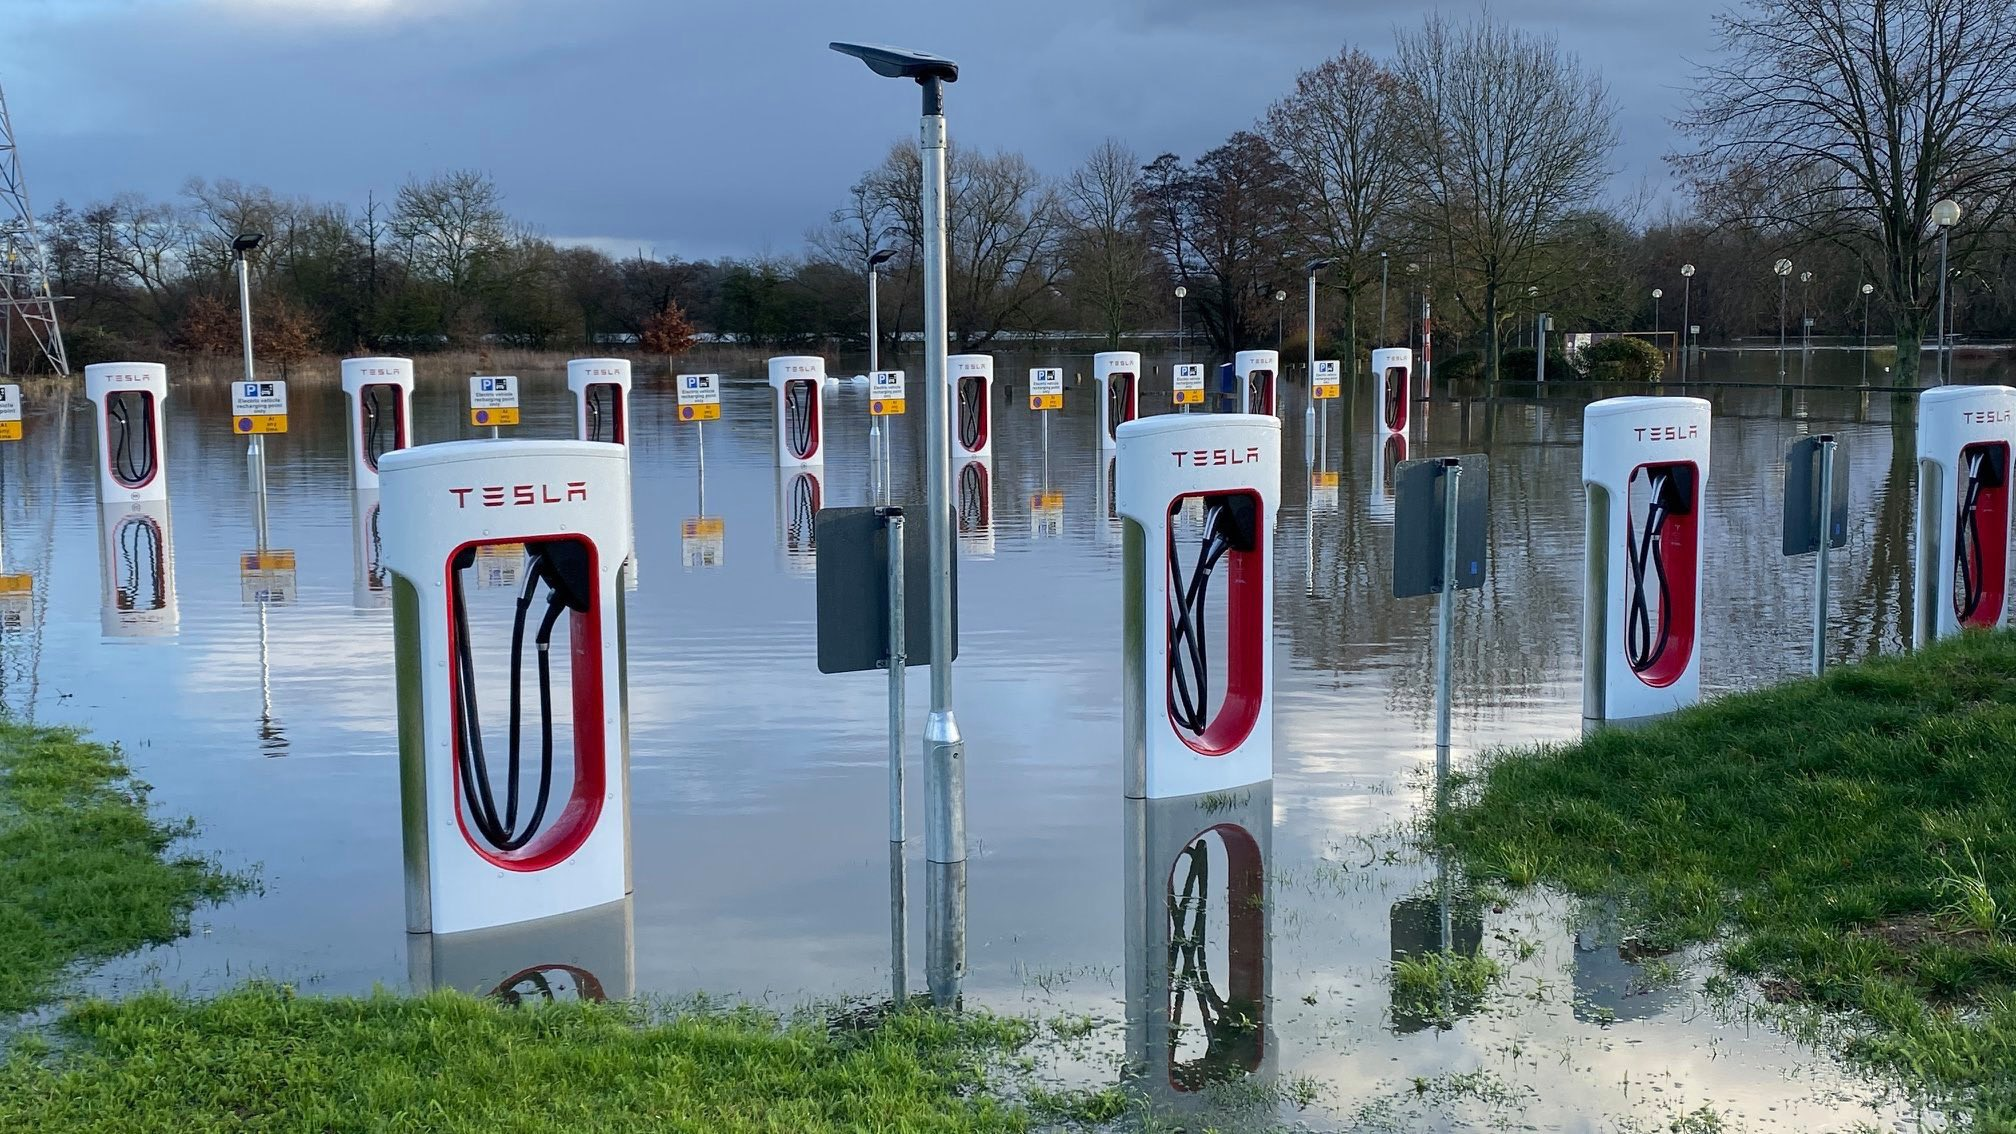 """Megan Baynes on Twitter: """"Possibly one of the most striking pictures of the  flooding I've been sent — the Tesla electric vehicle stations in Wokingham  are now underwater. I feel like there"""